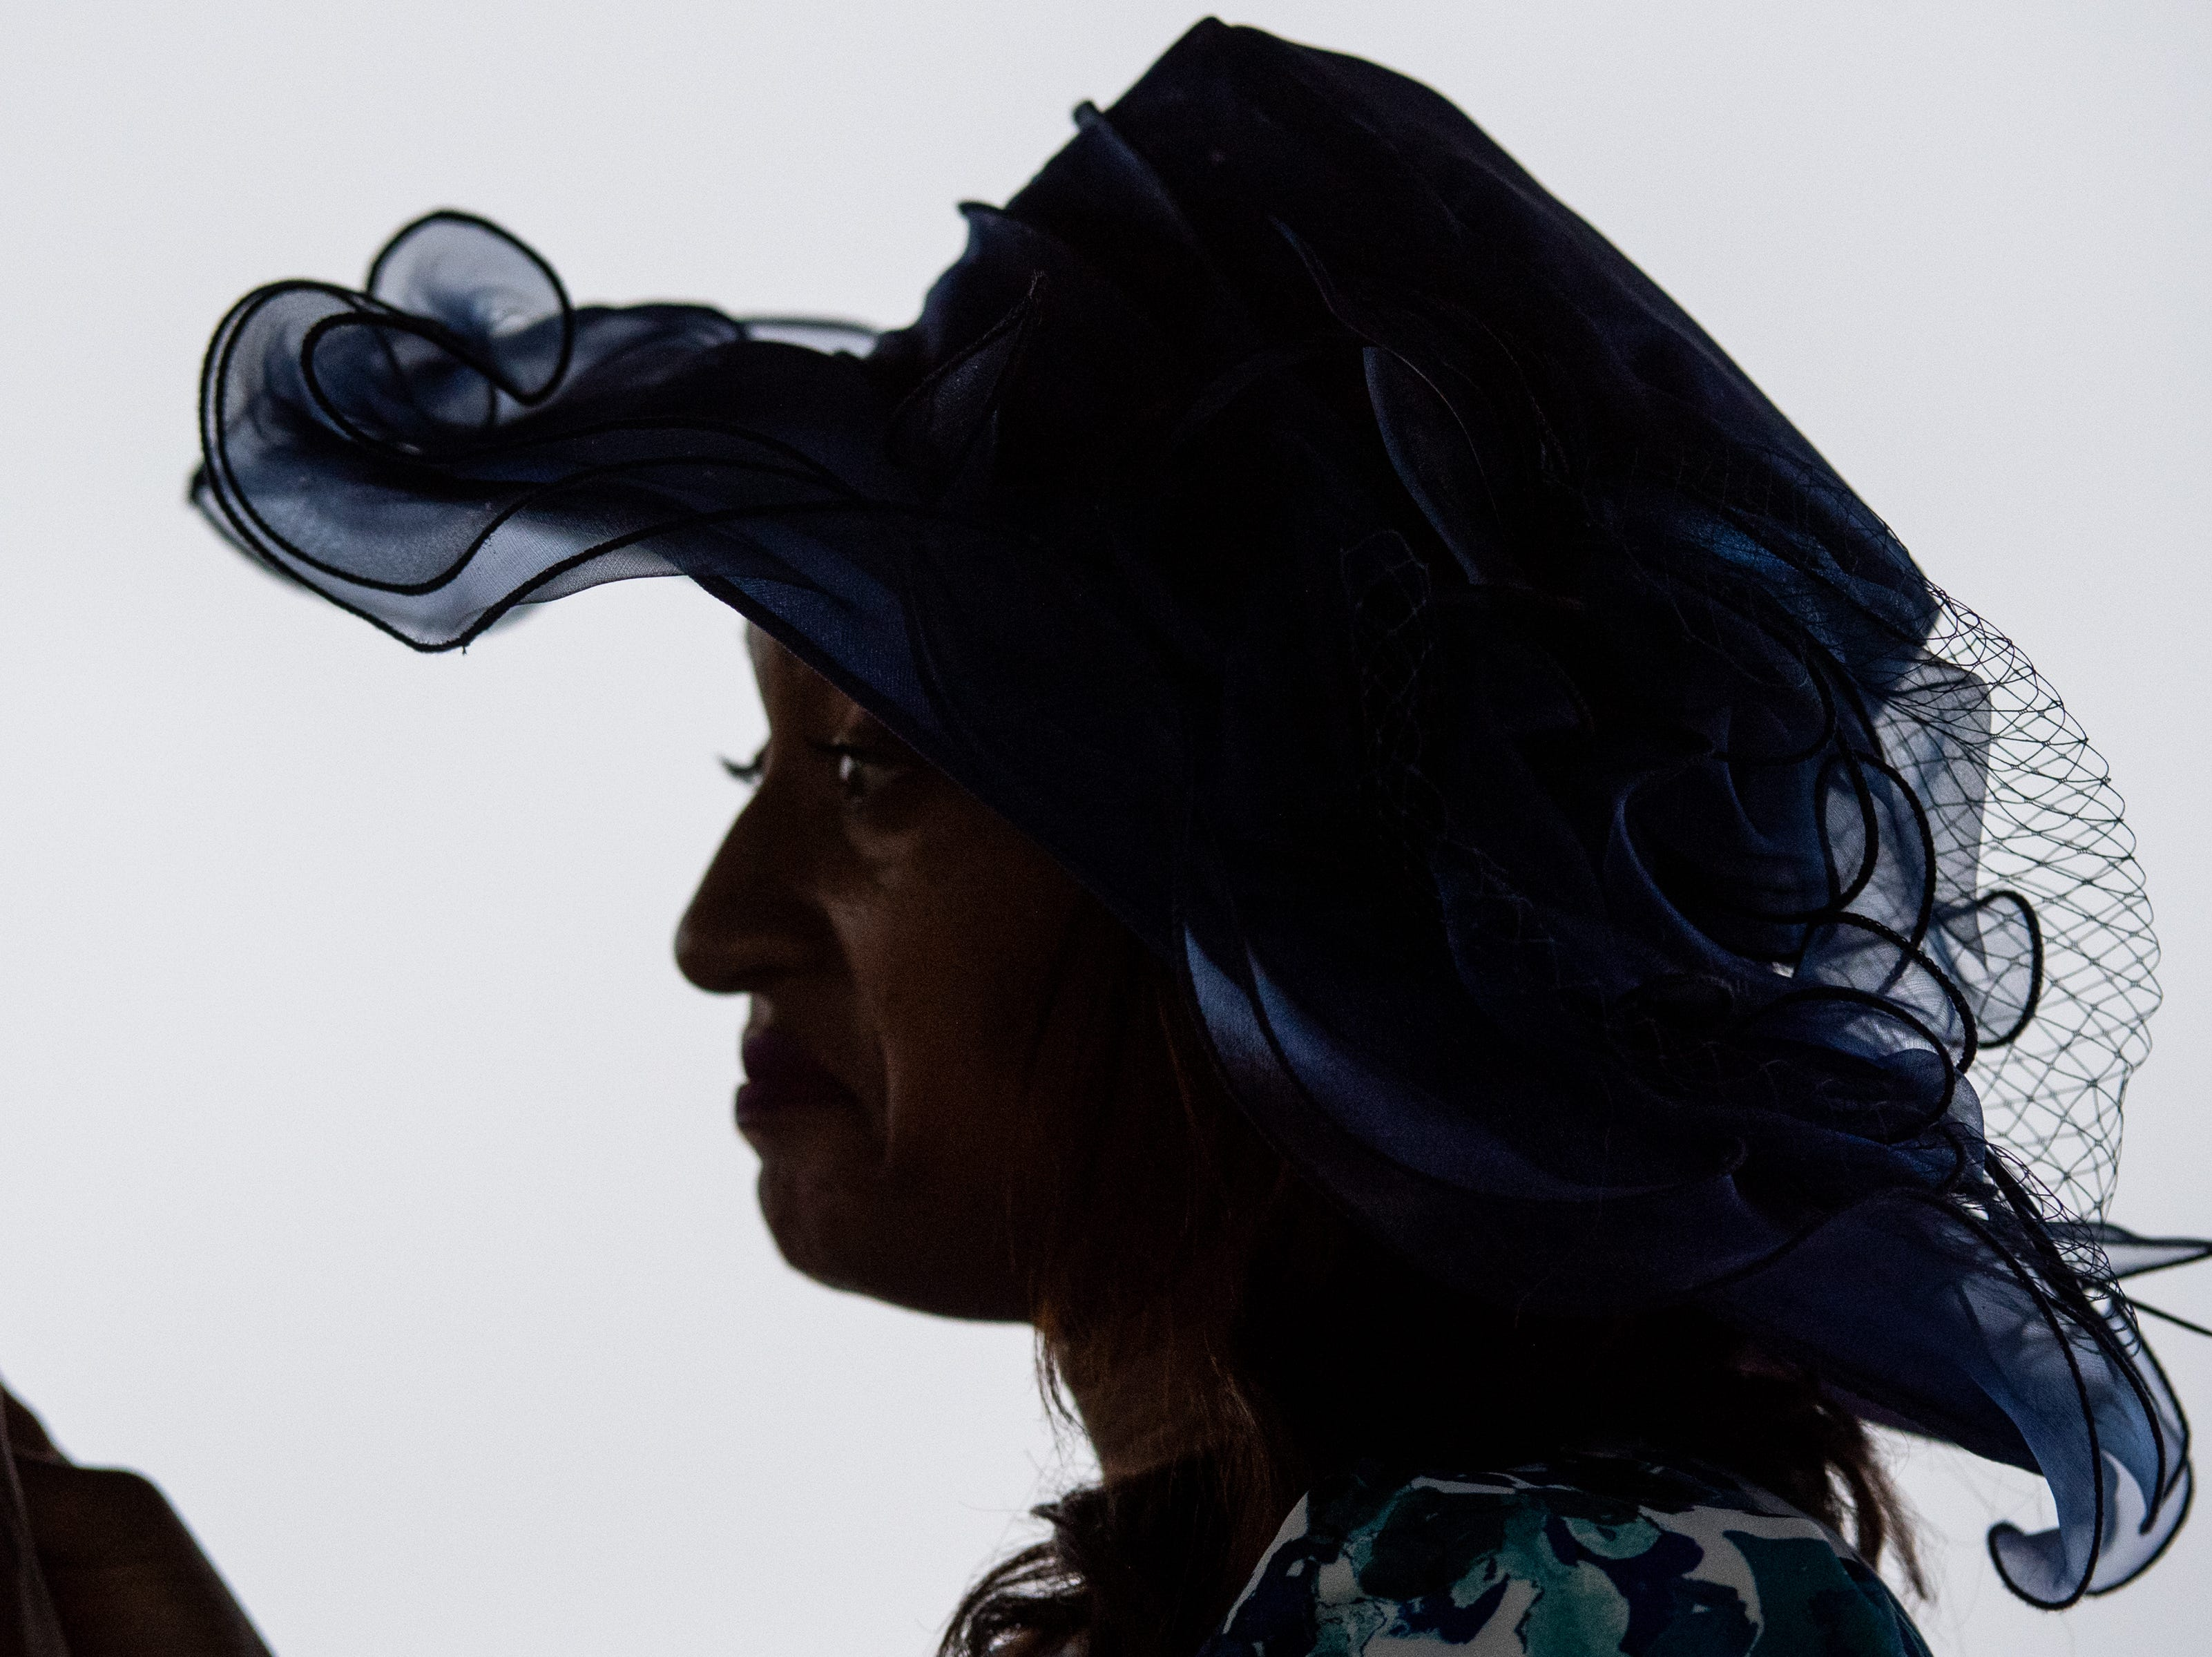 A woman wears a hat before the final race of the Iroquois Steeplechase at Percy Warner Park Saturday, May 11, 2019, in Nashville, Tenn.